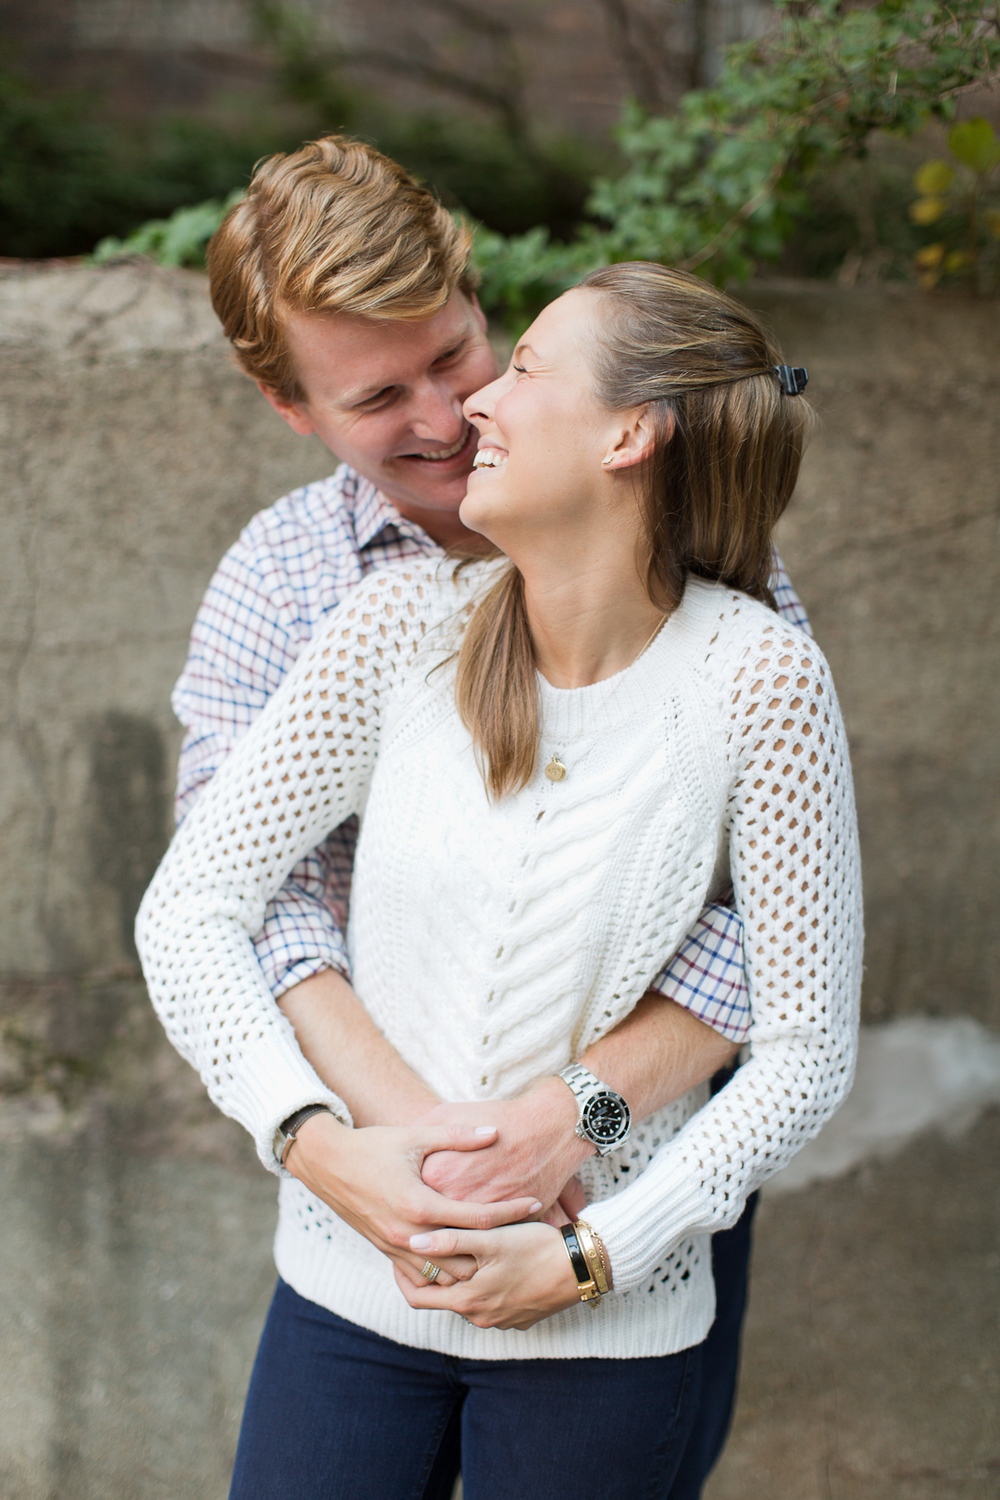 Melissa Kruse Photography - Megan & Tyler West Village Engagement Photos-21.jpg